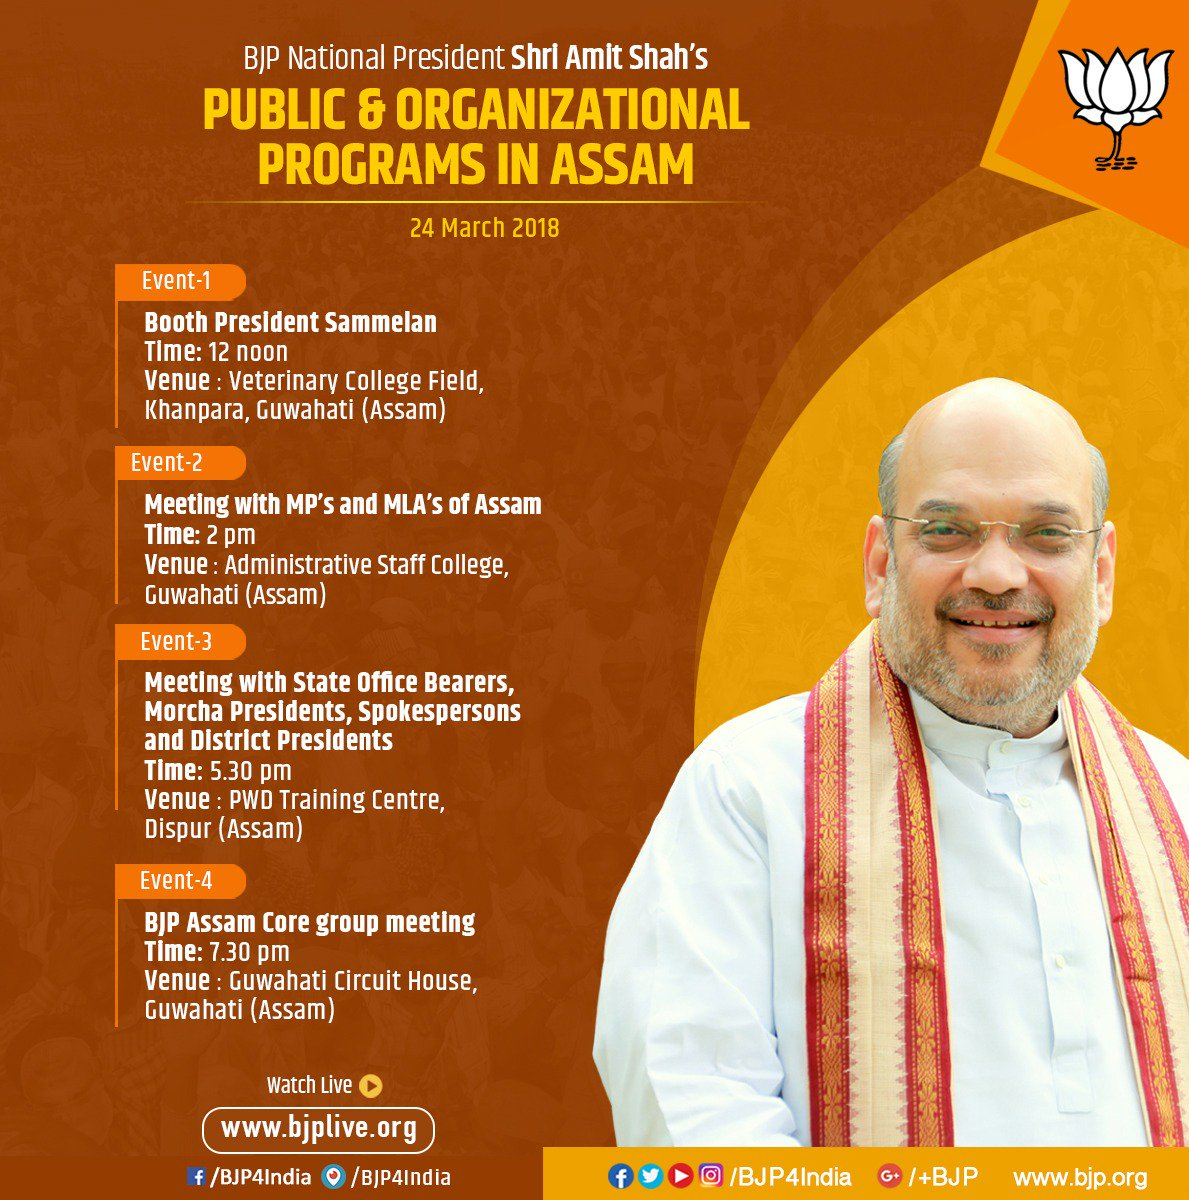 BJP National President Shri @AmitShah will address 'Booth Adhyaksh Sammelan' today at 12 noon in Guwahati, Assam. Watch LIVE at https://t.co/vpP0MI6iTu.